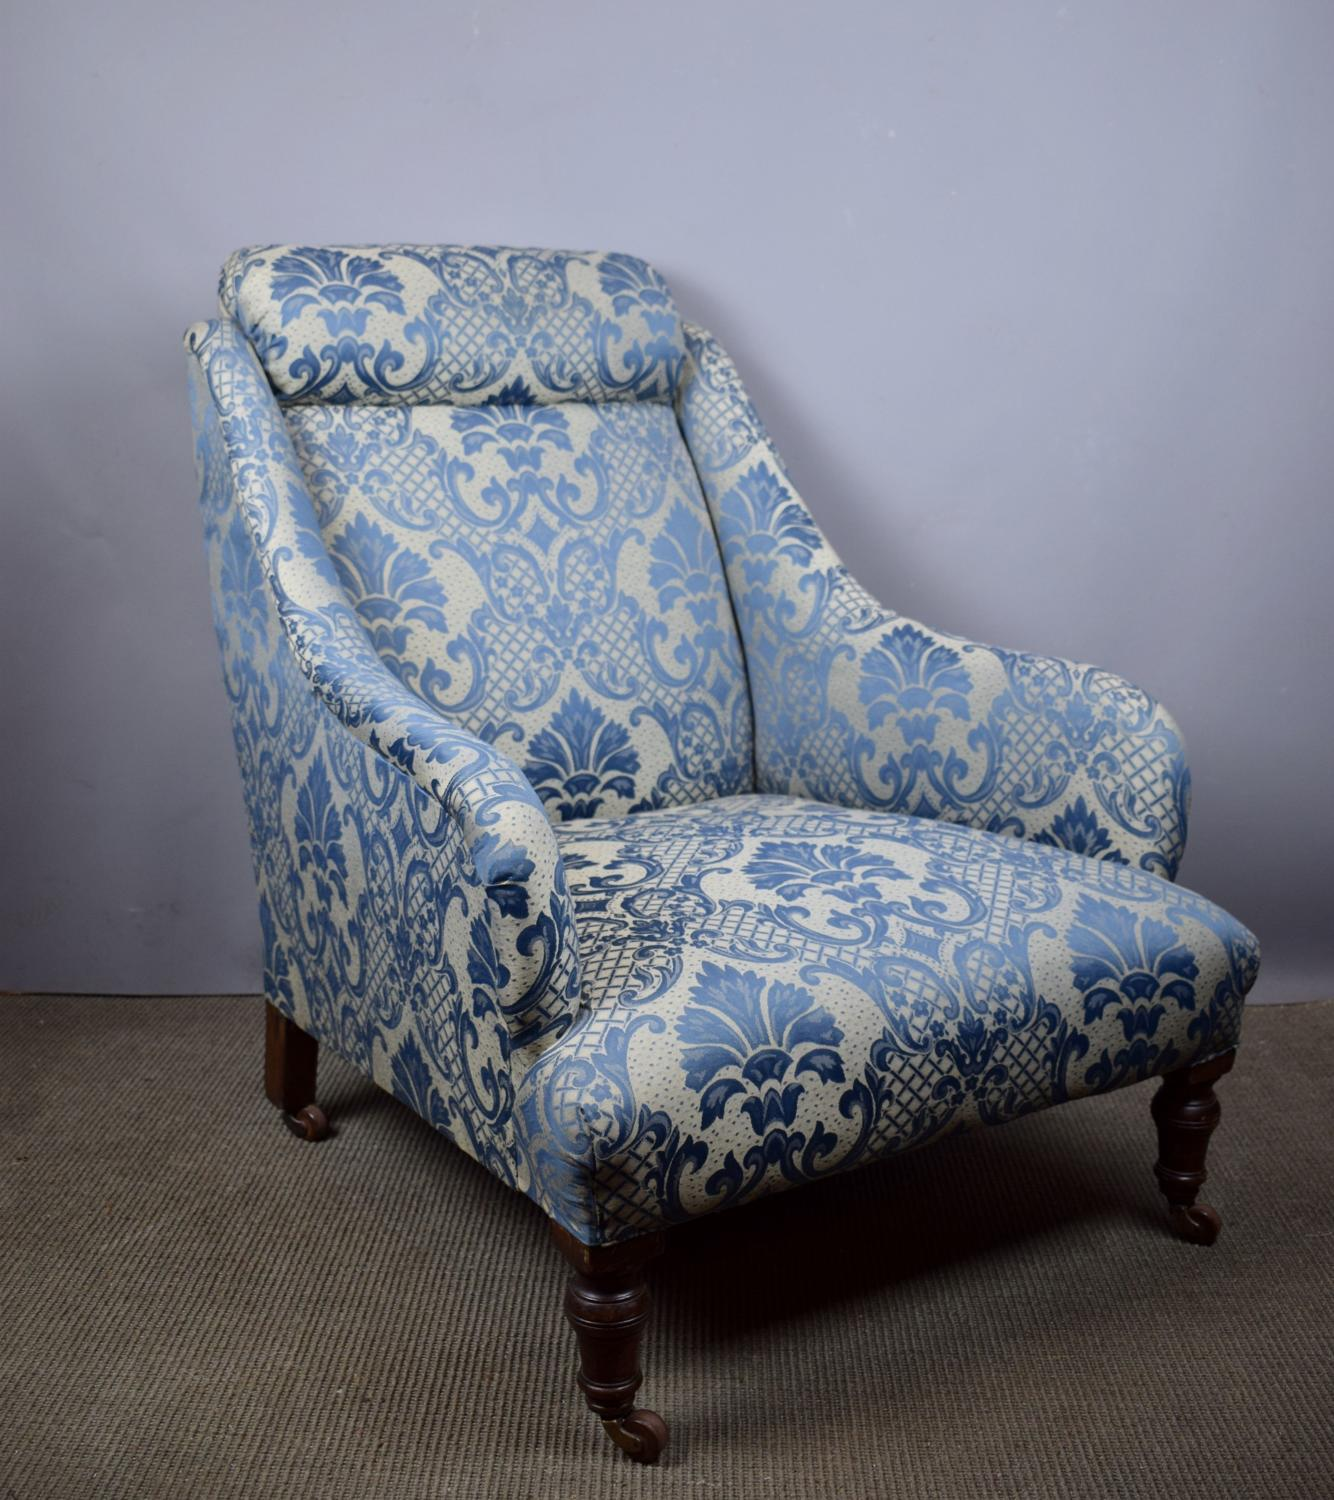 Antique Armchair in Blue Damask